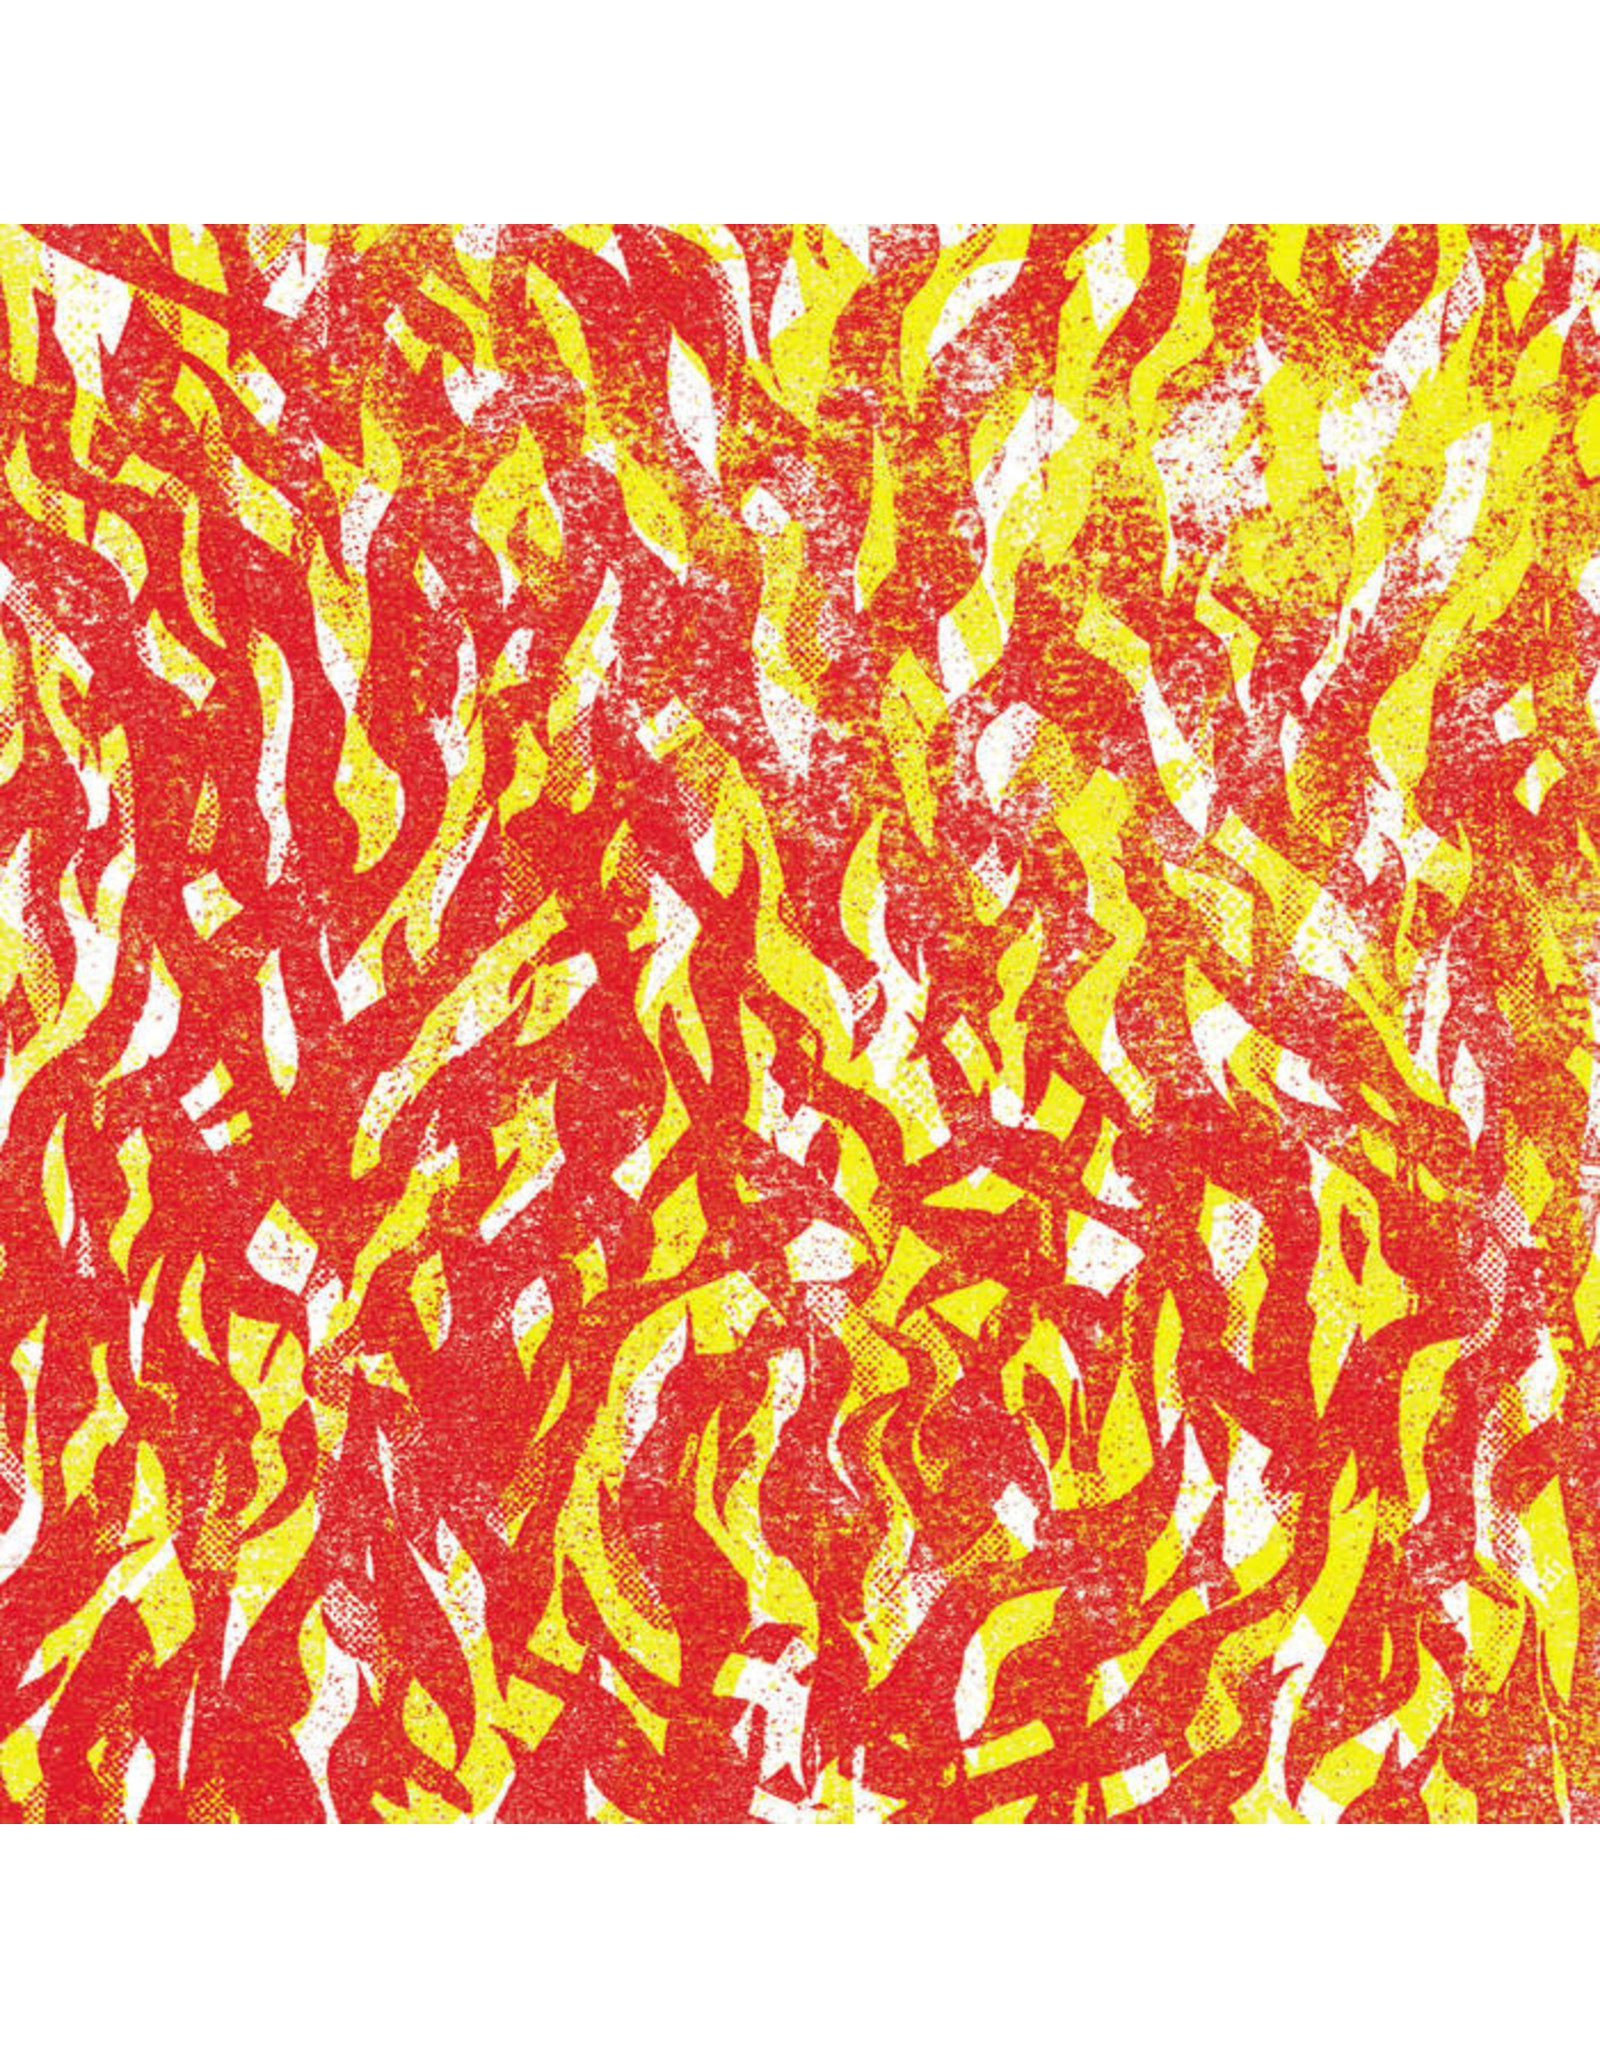 Bug, The - Fire 2LP (Indie Exclusive Yellow + Red Vinyl)